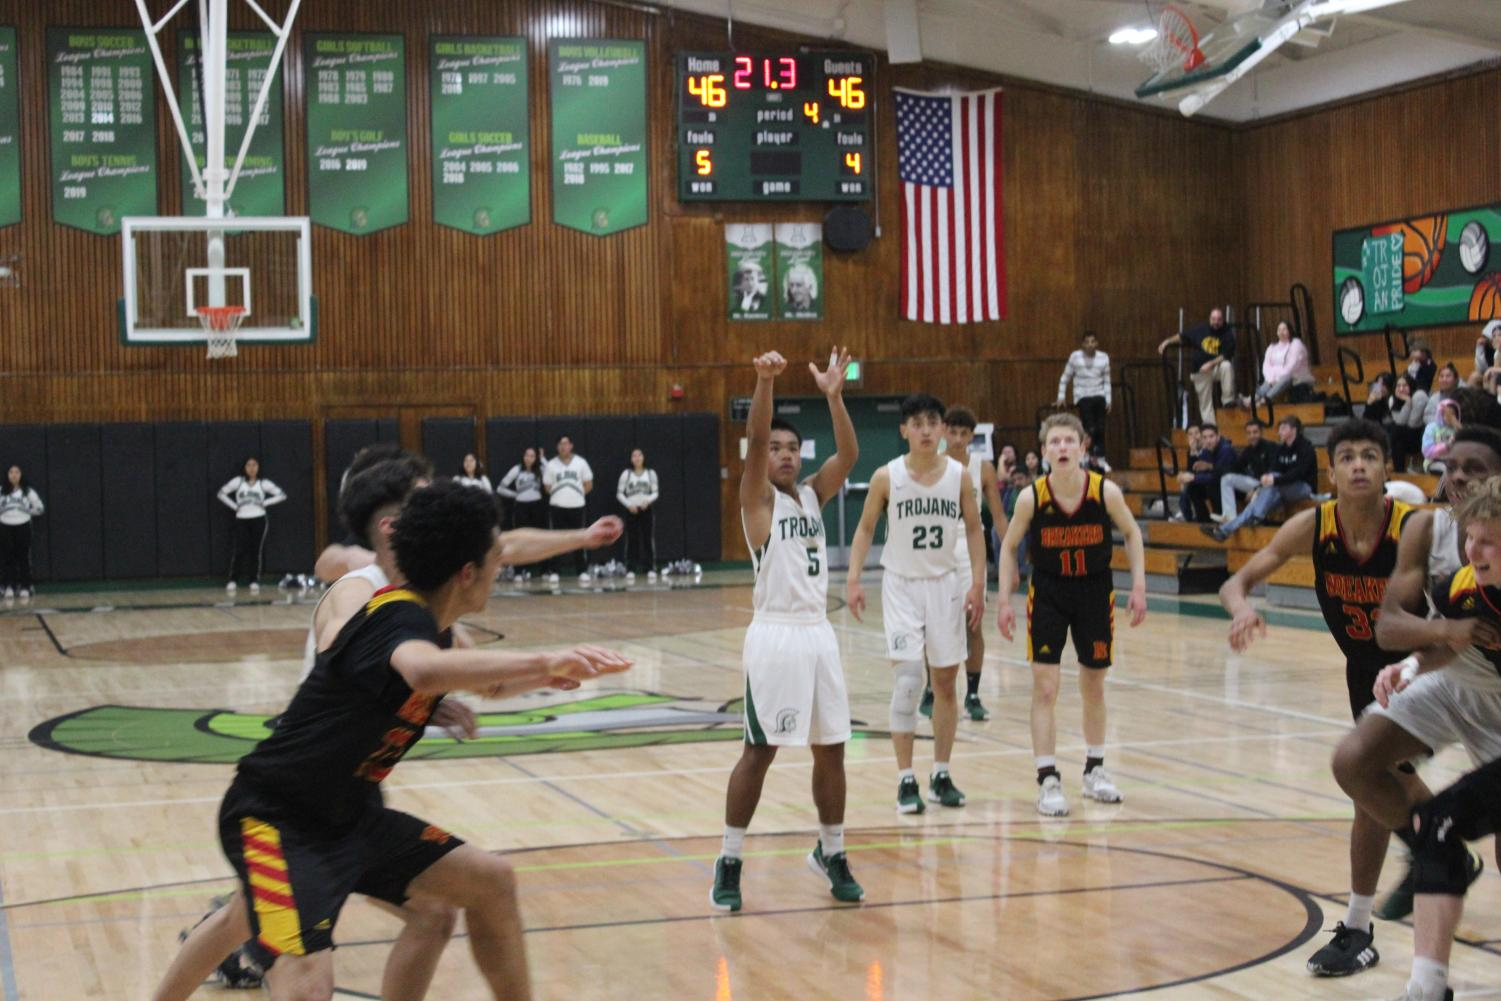 Junior guard Jopel Gaveria, making two free-throws to bring up the score to 47-46 with 21.3 seconds left. Trojans play tough defense on the other end to win the game .